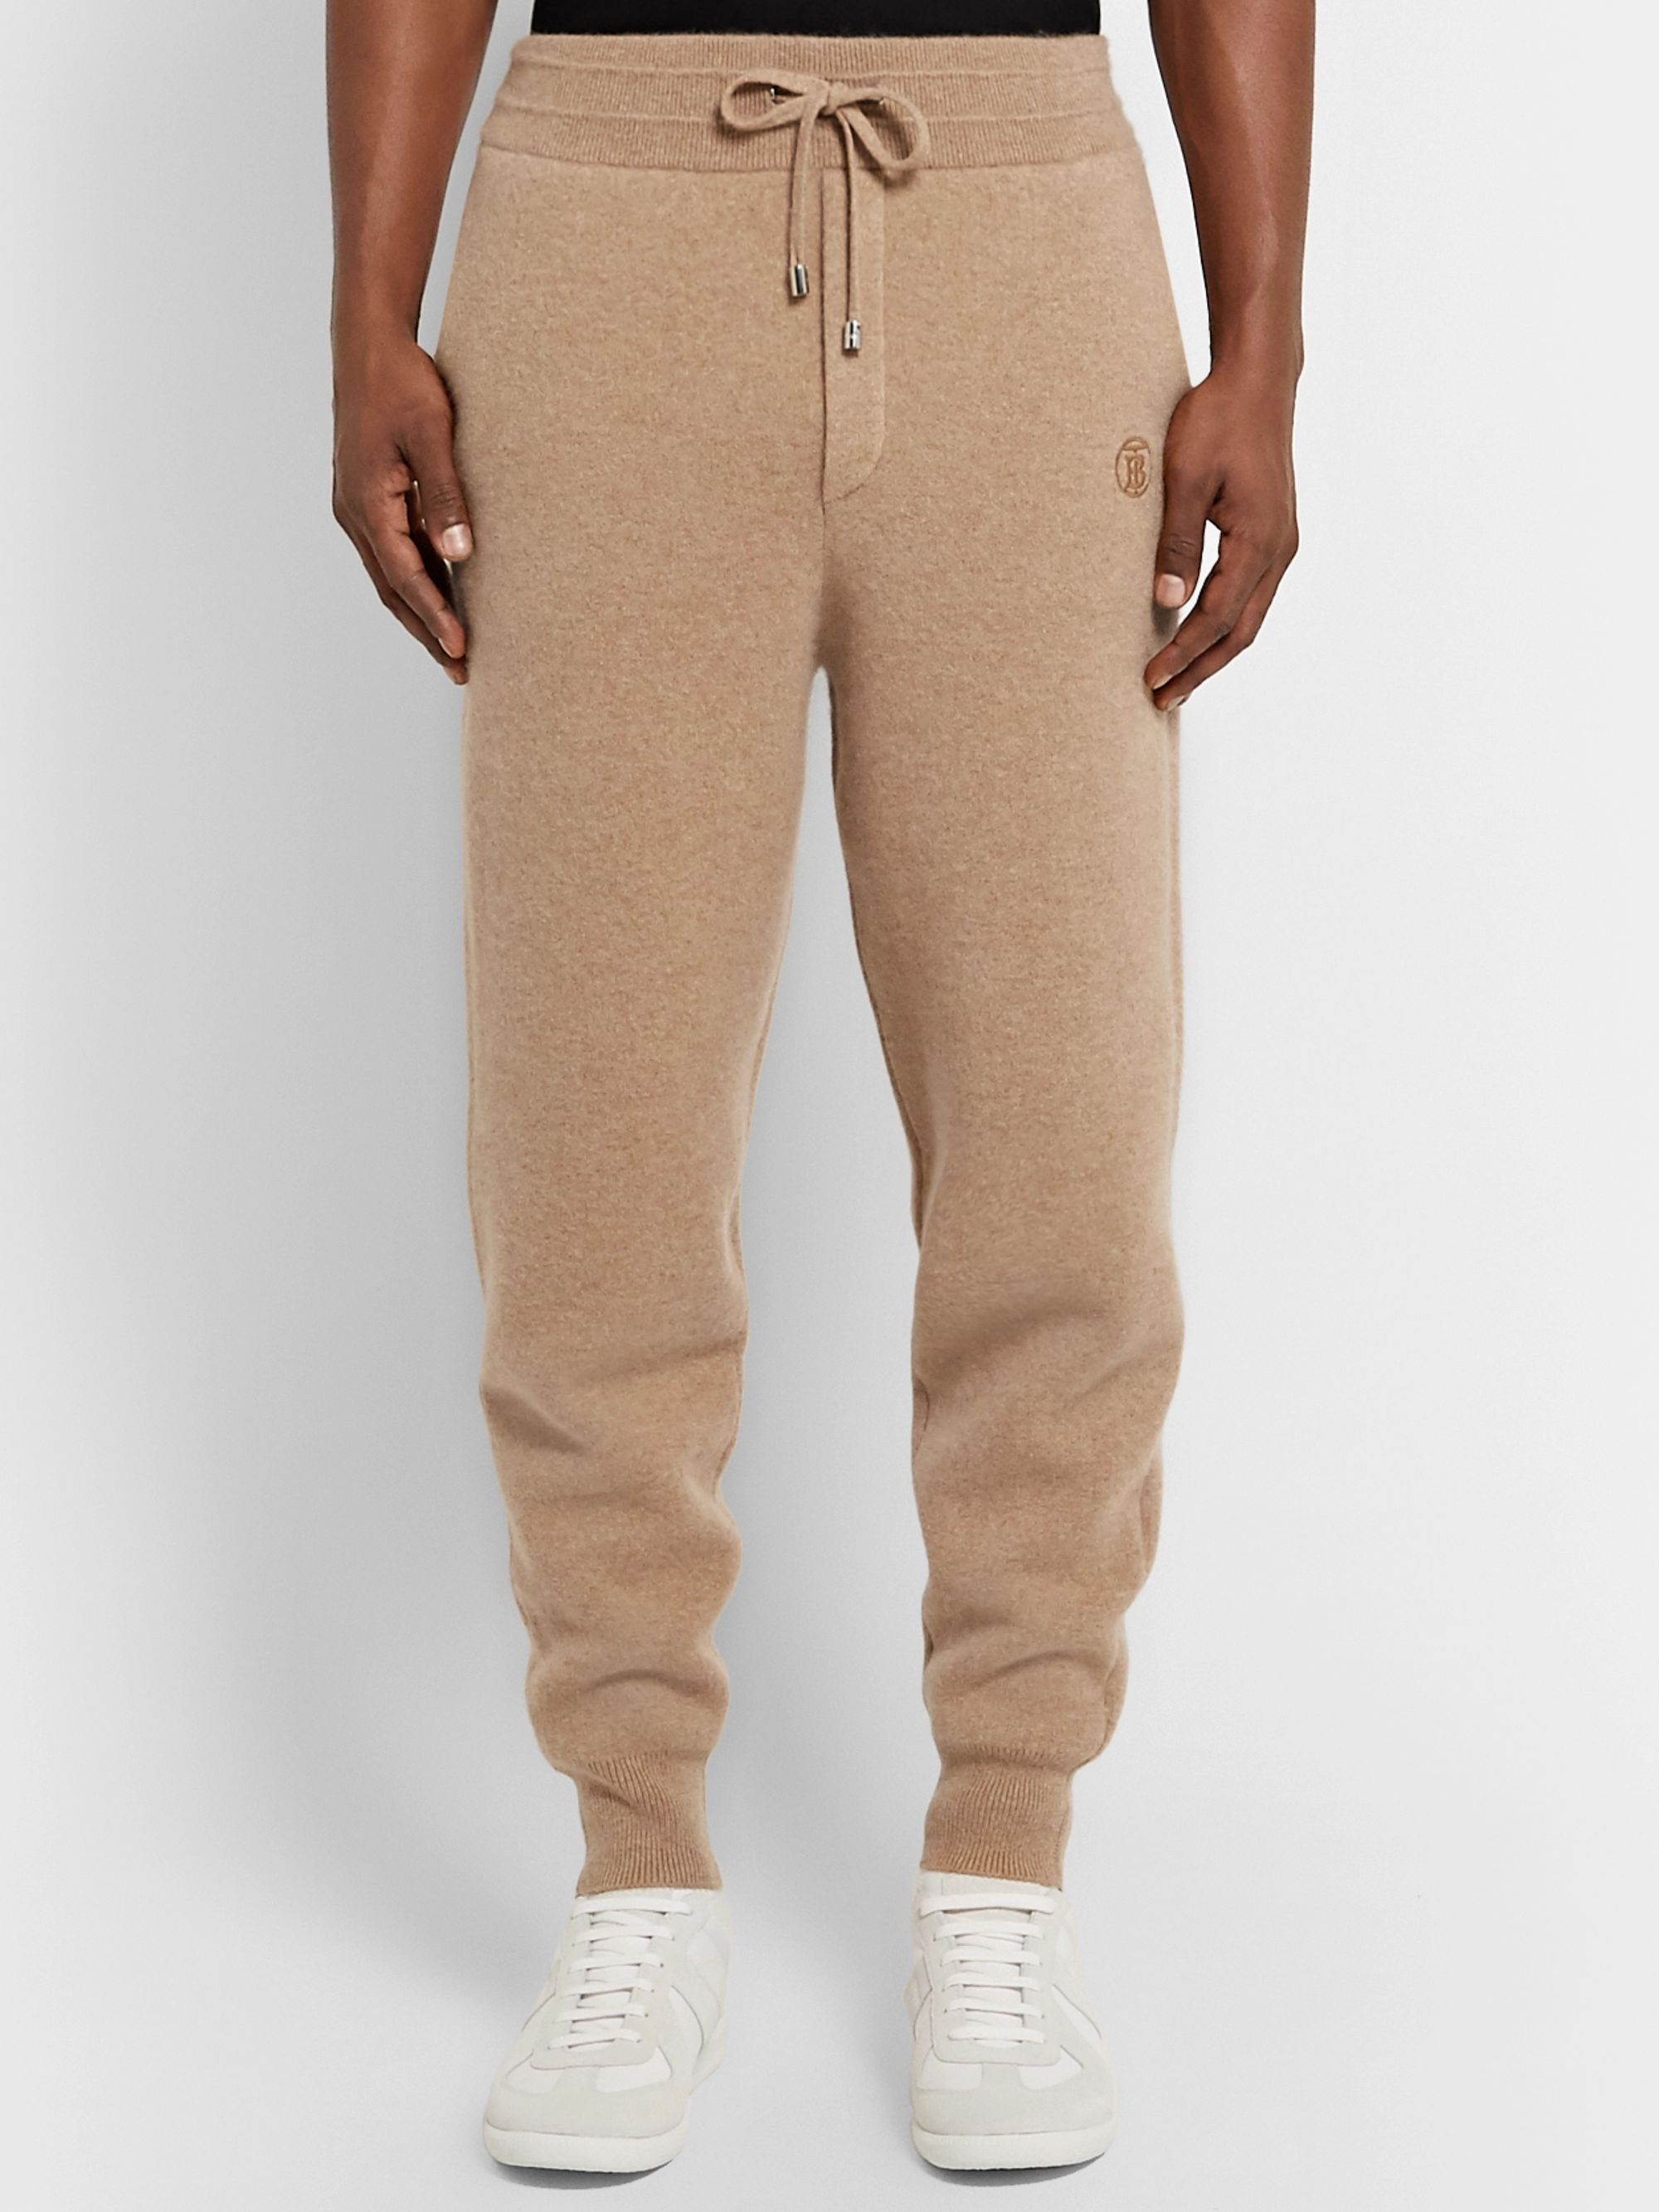 Burberry Tapered Cashmere-Blend Sweatpants